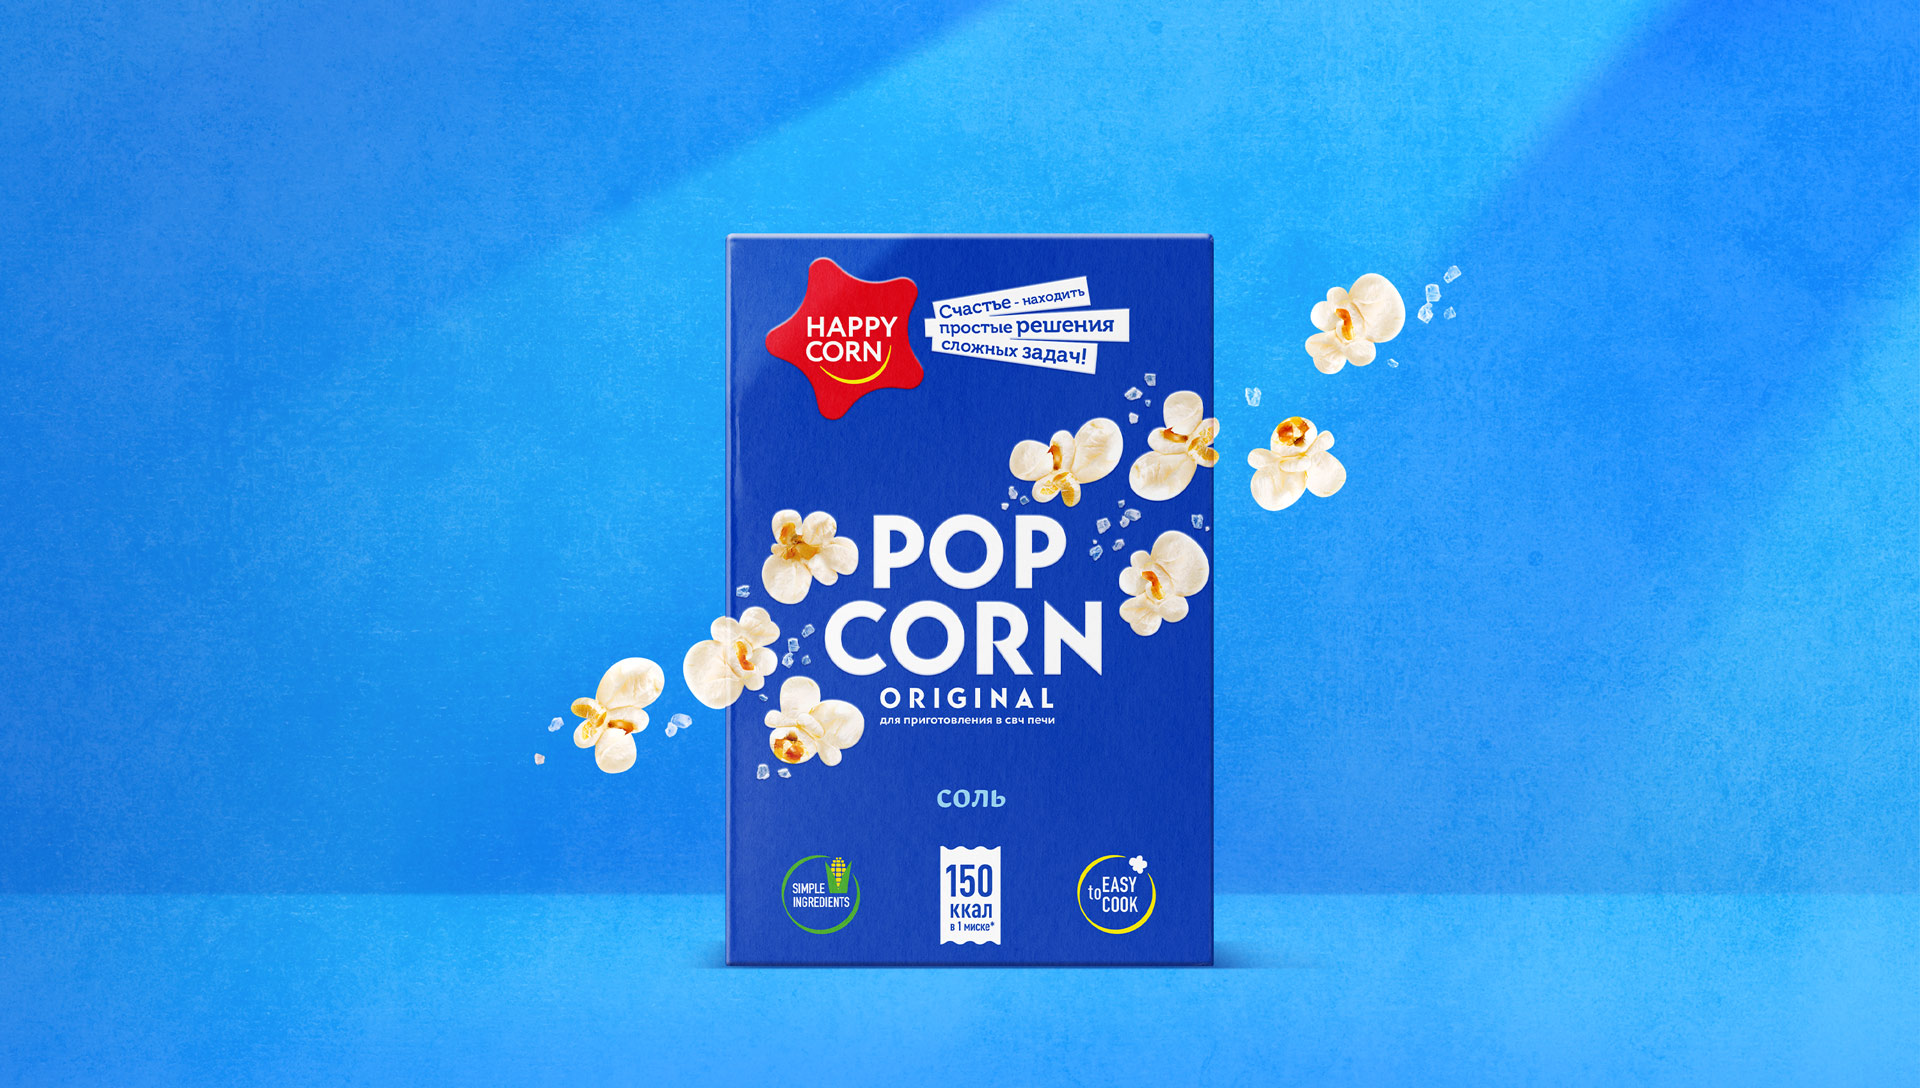 Redesign of the Popcorn Package Design HAPPY CORN